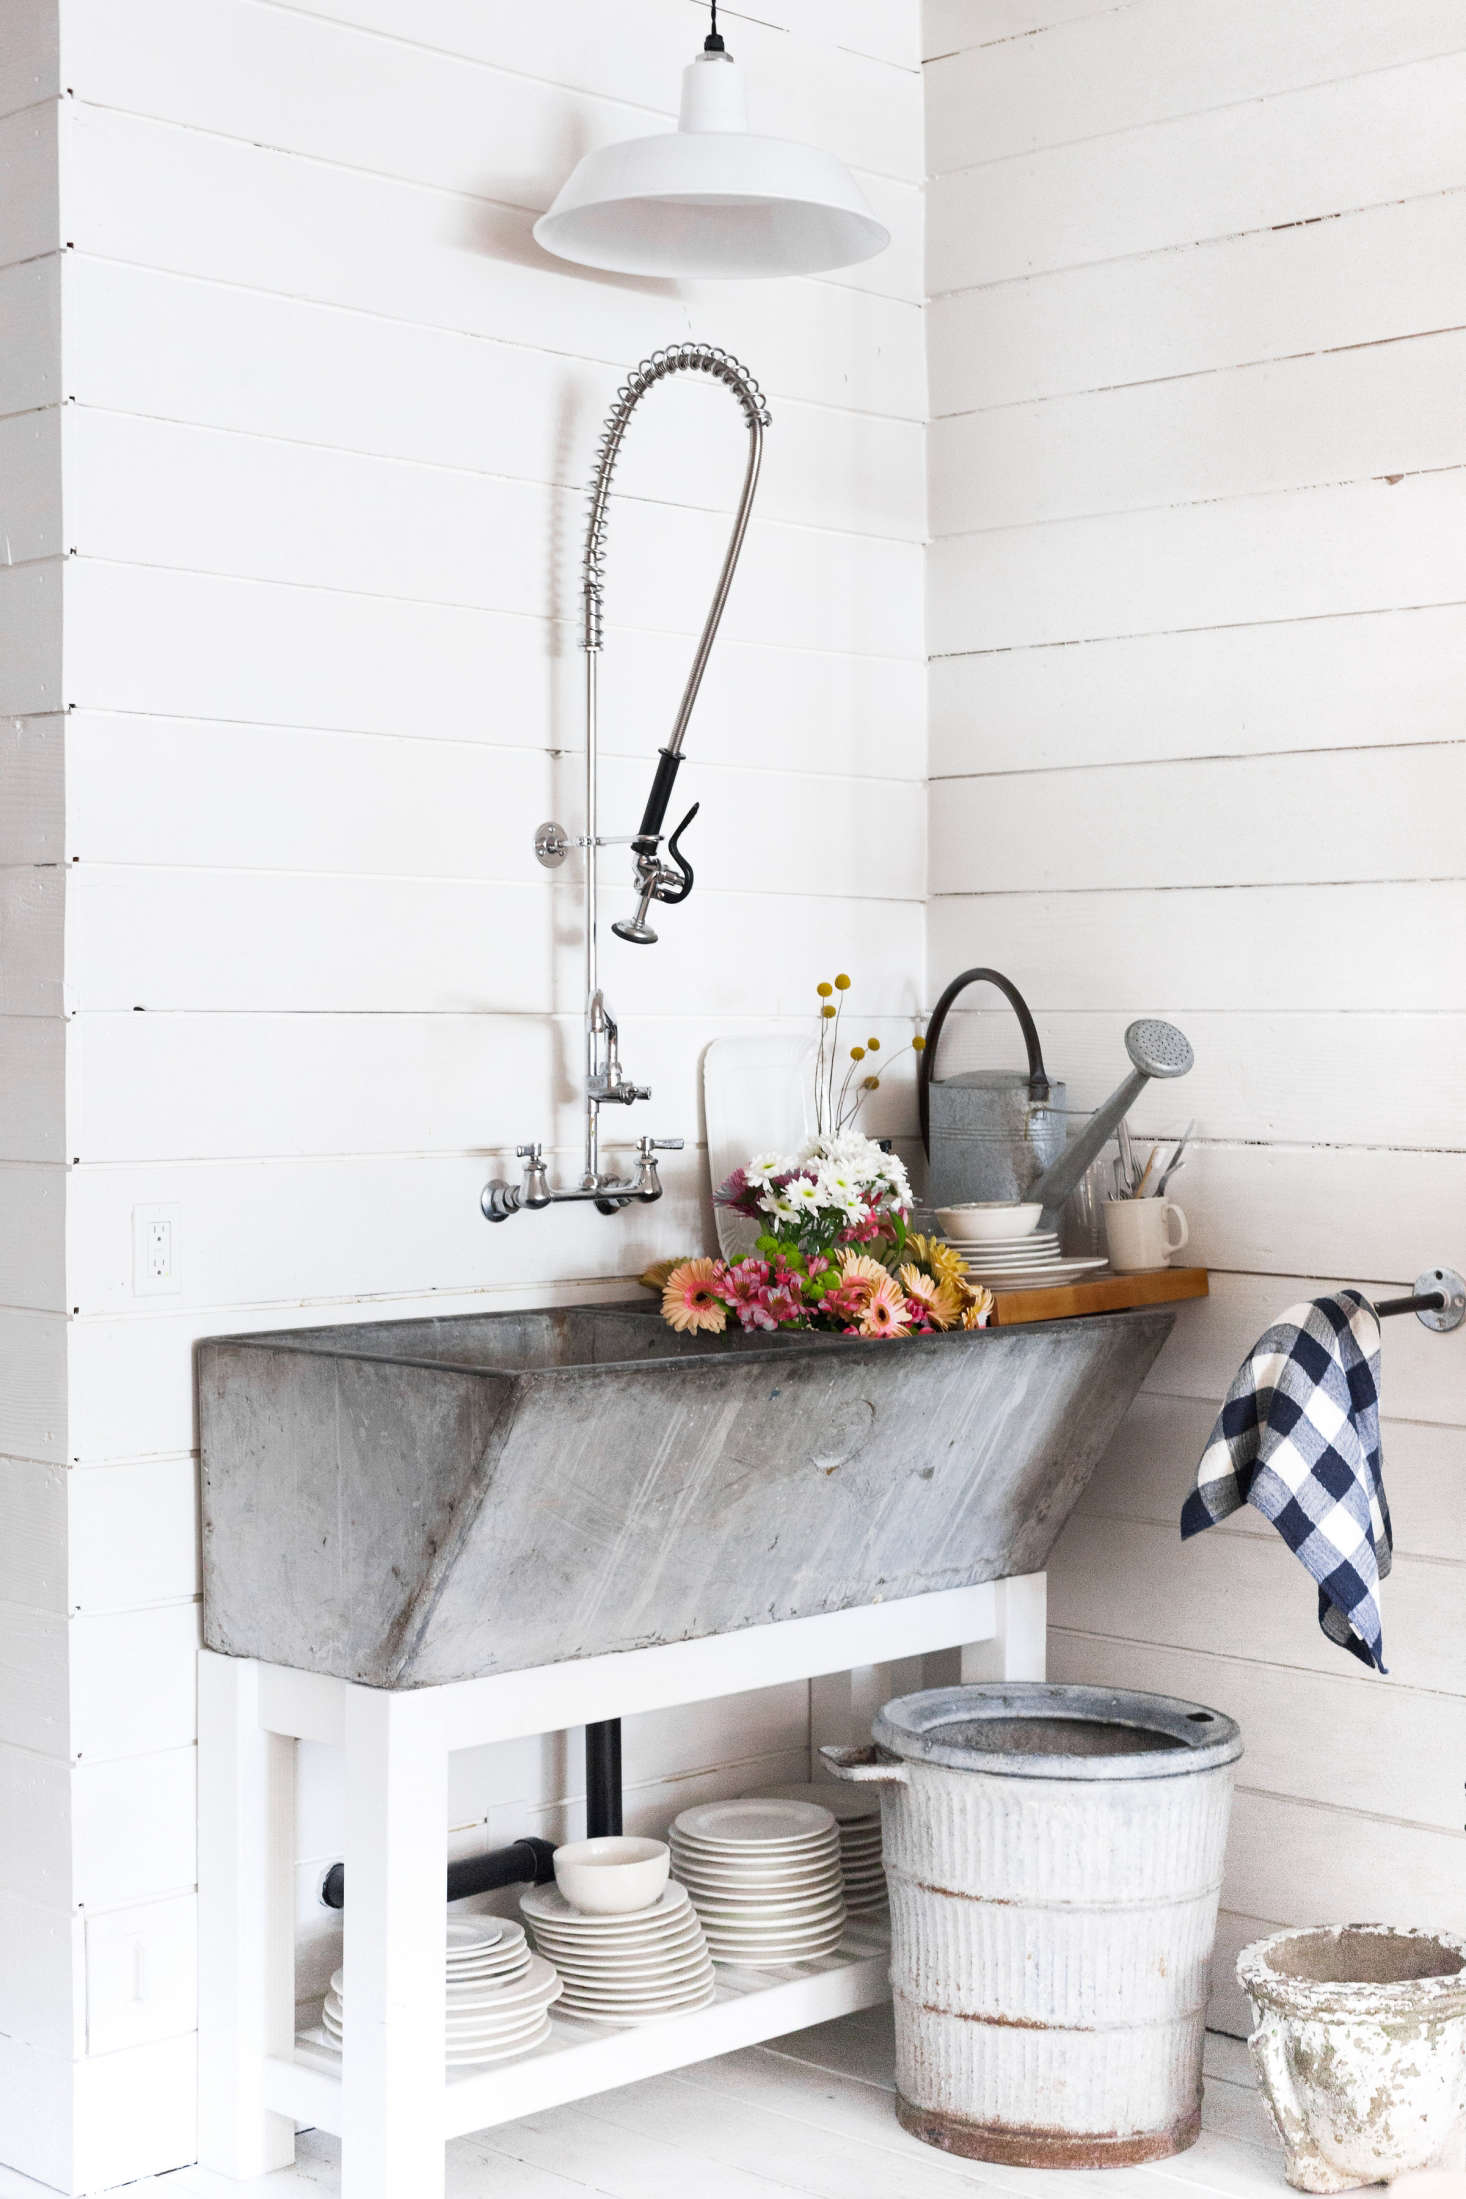 A vintage farmhouse sink at the back of the store is used for watering flowers and rinsing the occasional dish.